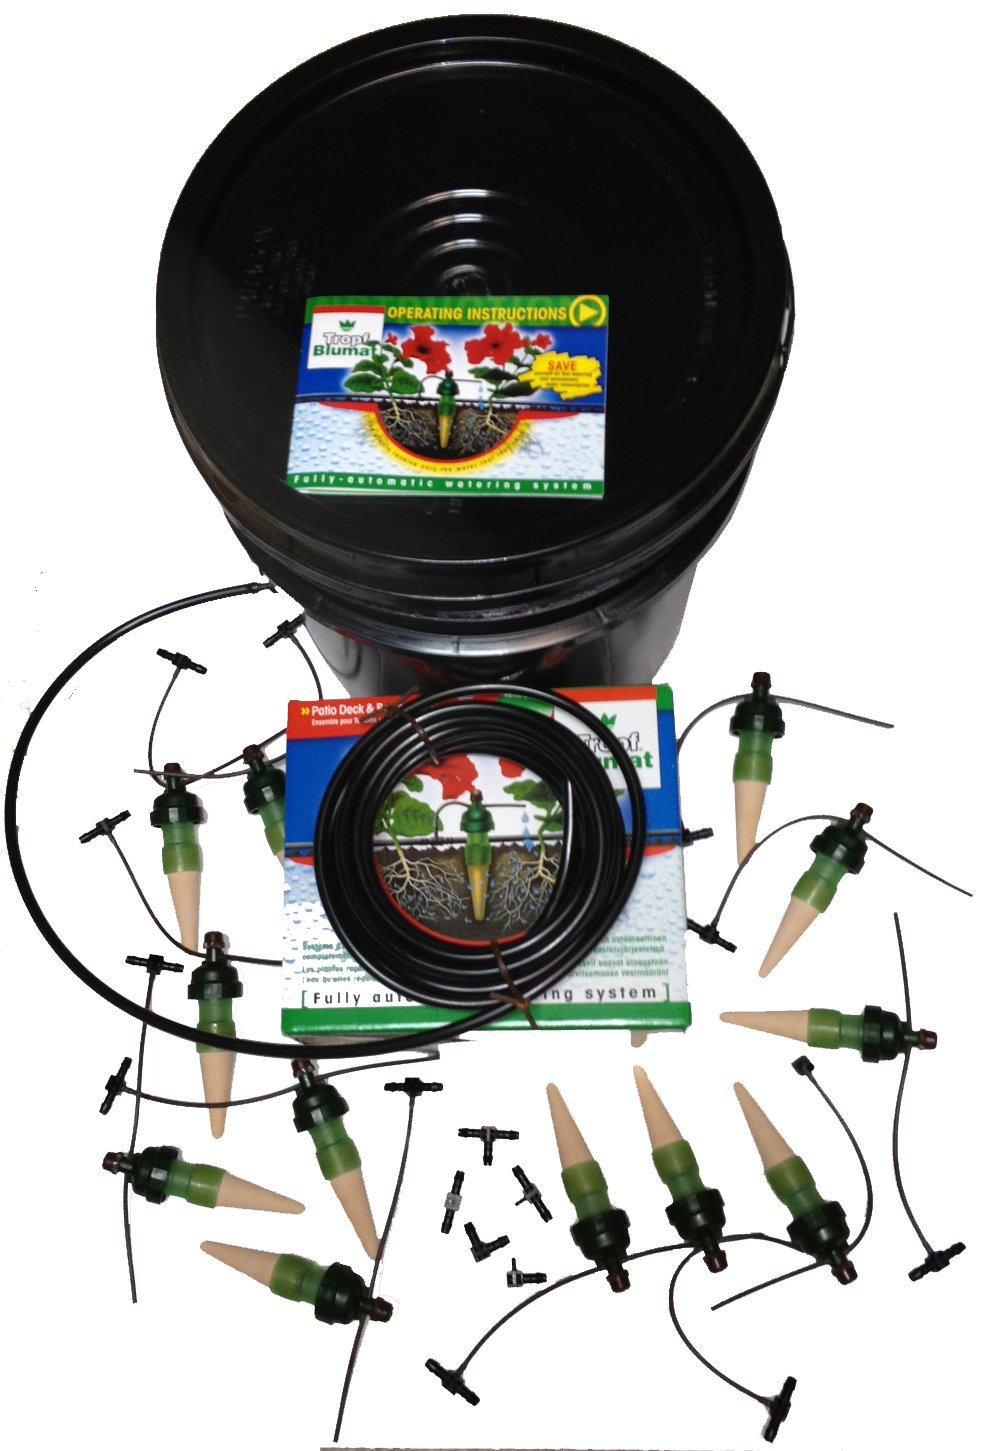 Blumat Plant Spikes Kit, Medium w/ 5 Gallon Reservoir, Made in Austria, 12 Stakes for Automatic or Vacation Watering